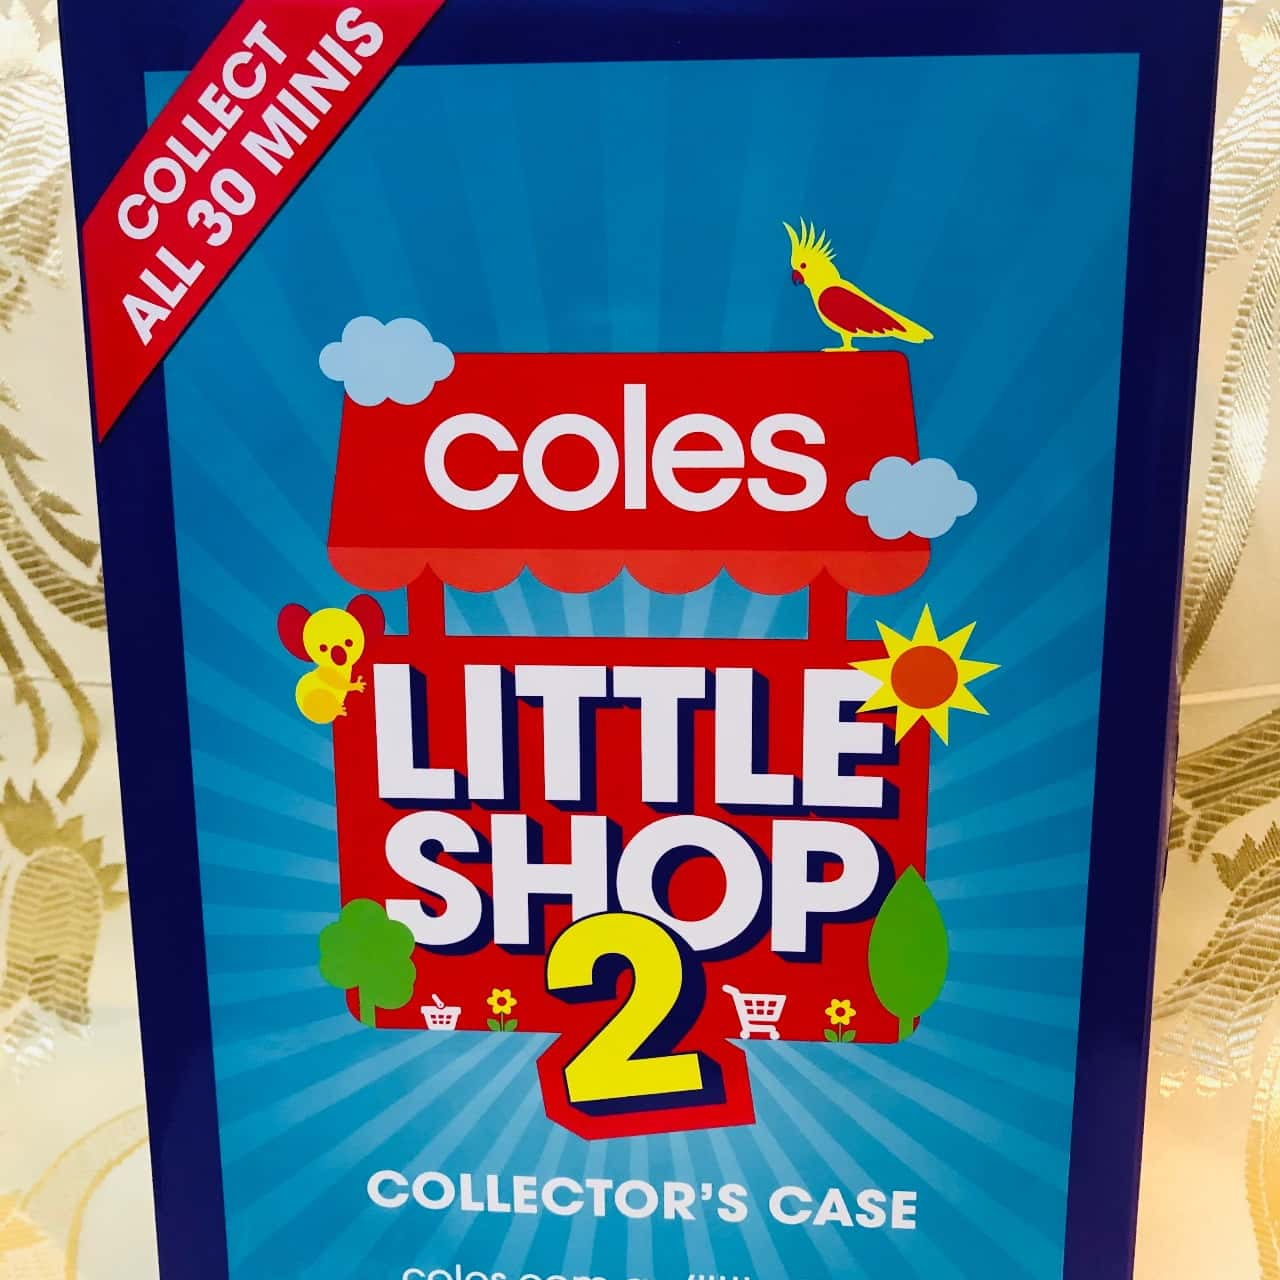 Little Shop 2 Collector's Case